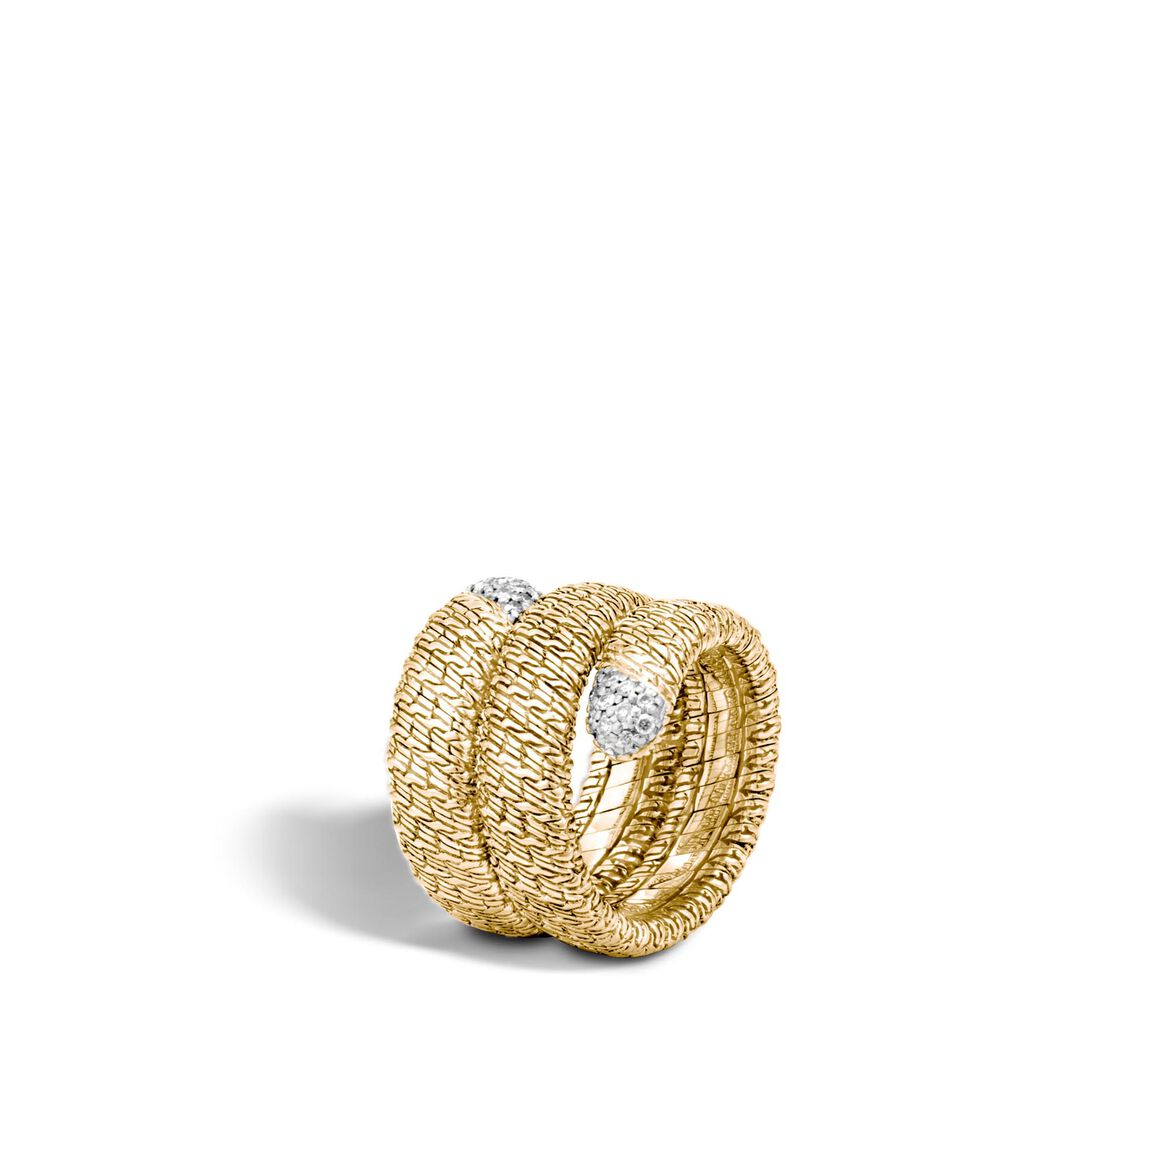 Classic Chain Coil Ring in 18K Gold with Diamonds